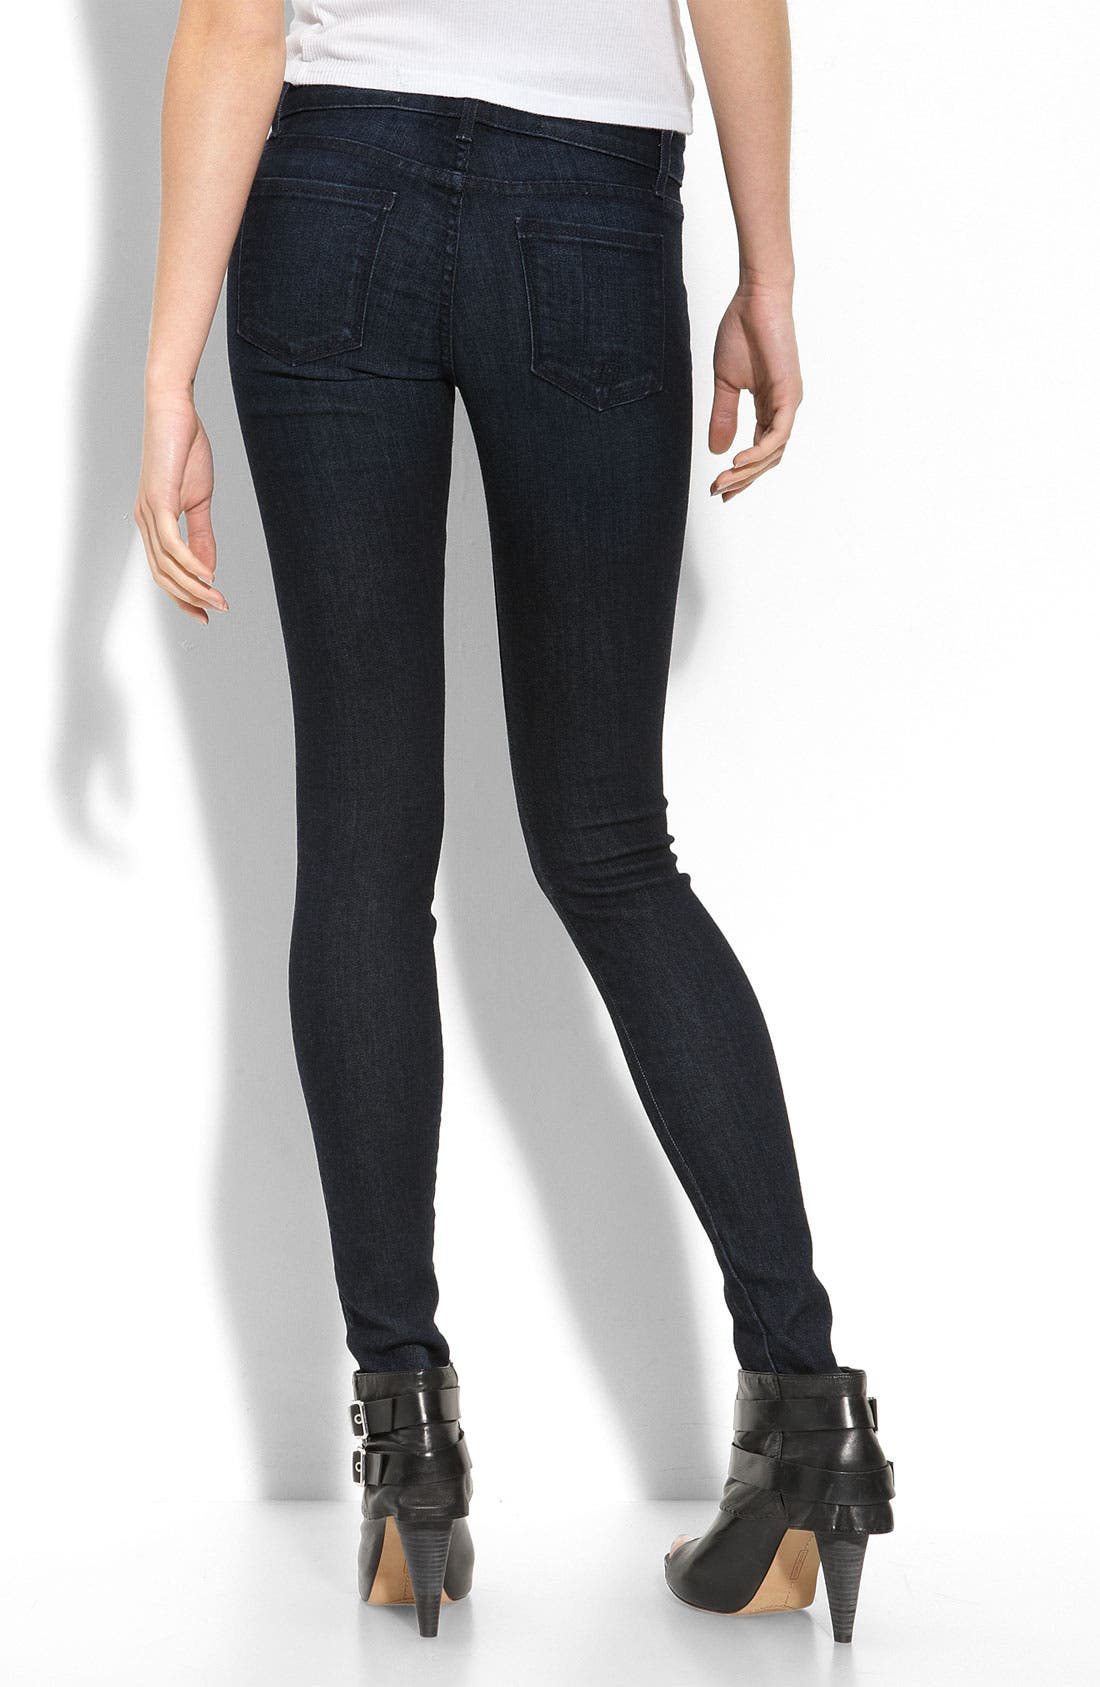 Alternate Image 1 Selected - Easy Money Jean Company 'Lira' Stretch Denim Leggings (After Party Wash)